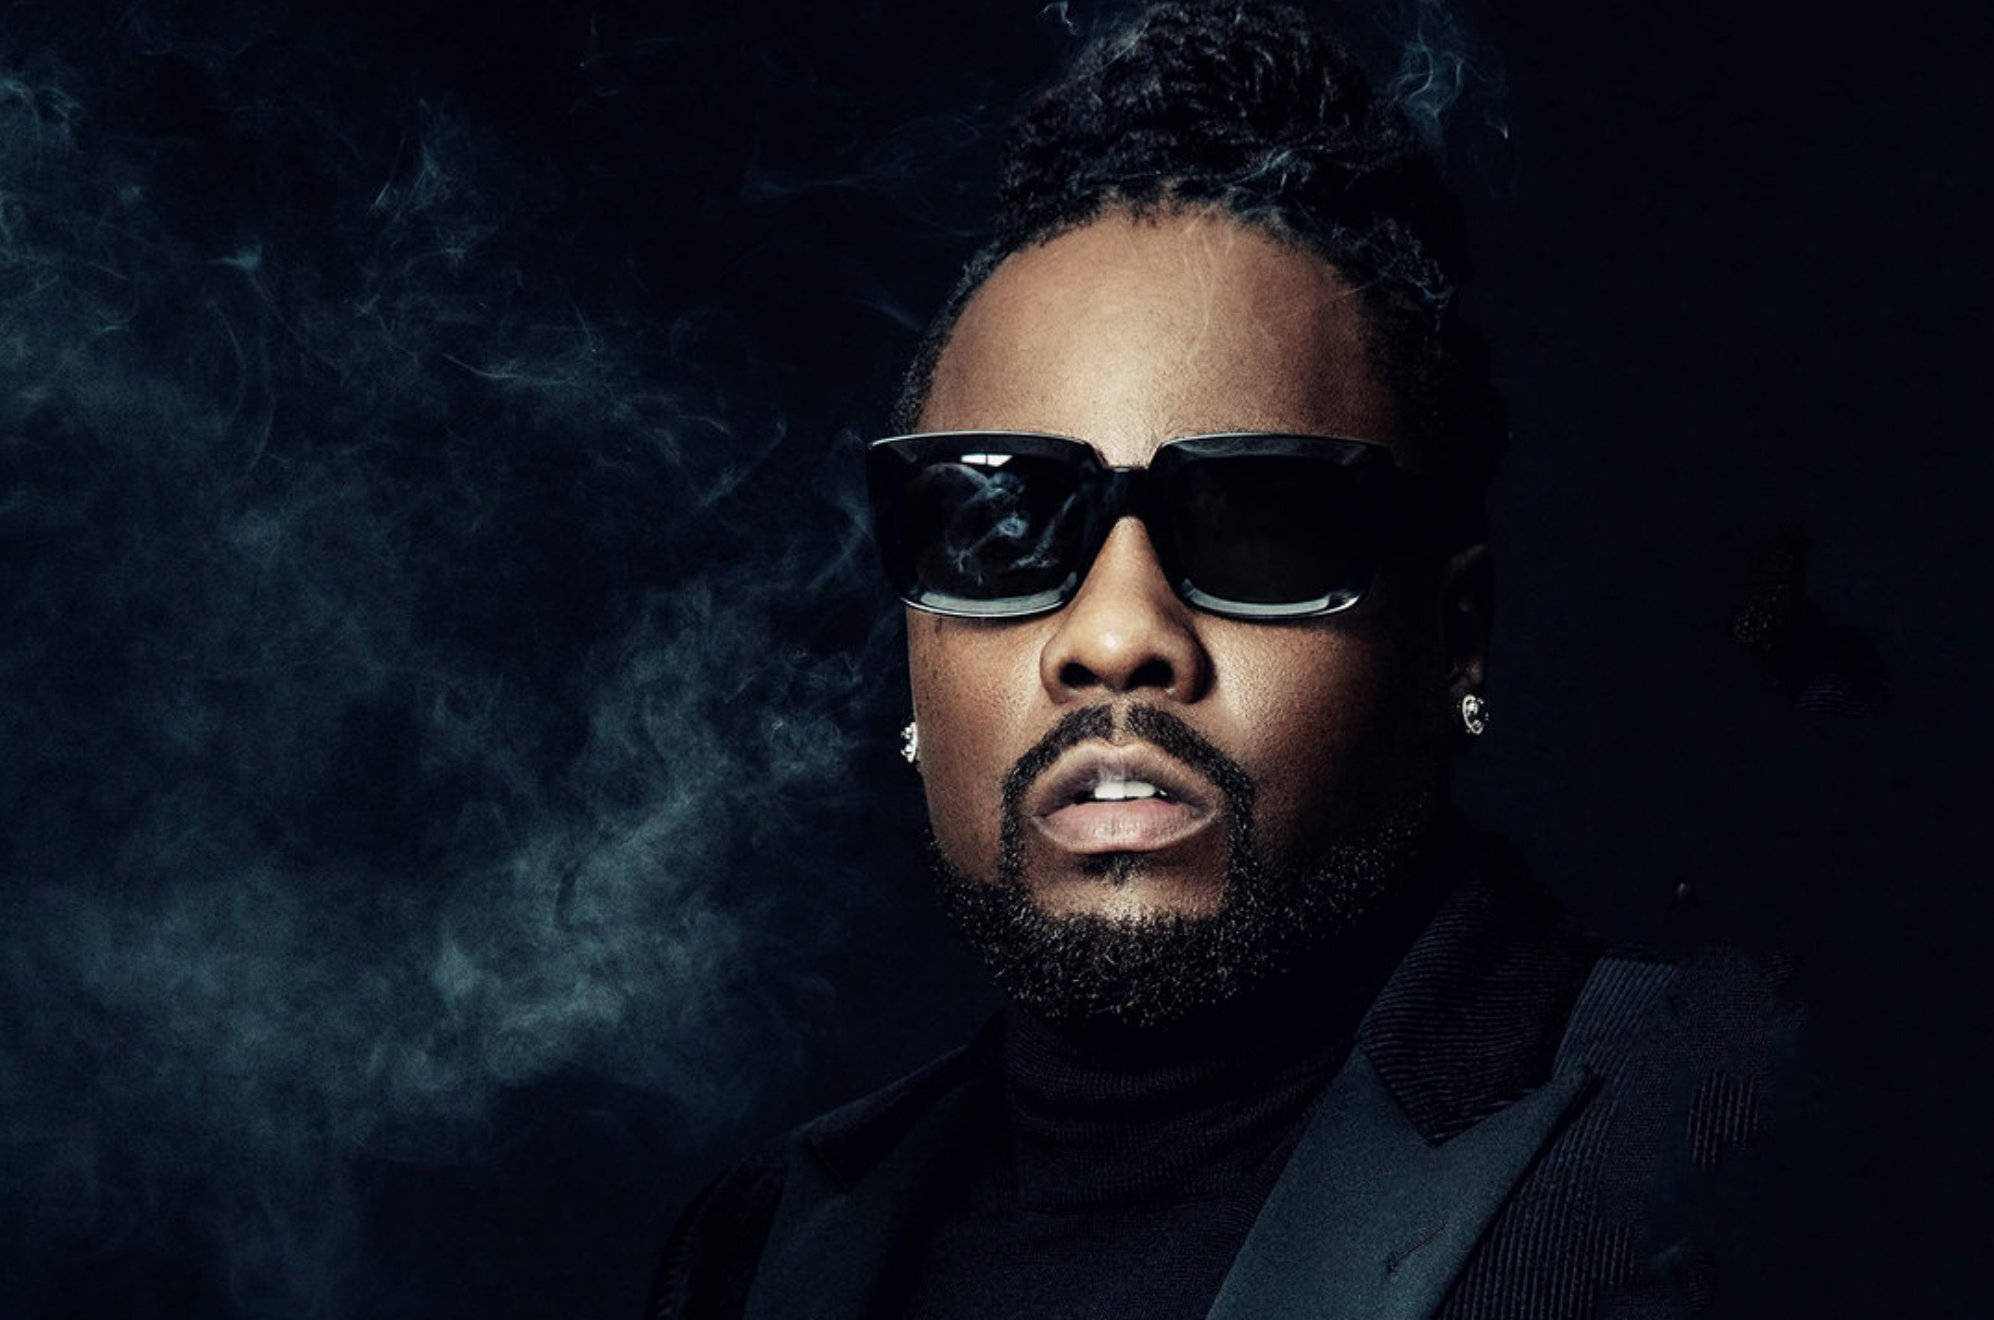 Wale Essentials https://t.co/Hr61TDPsbP #TIDAL https://t.co/3Kqj98geZa